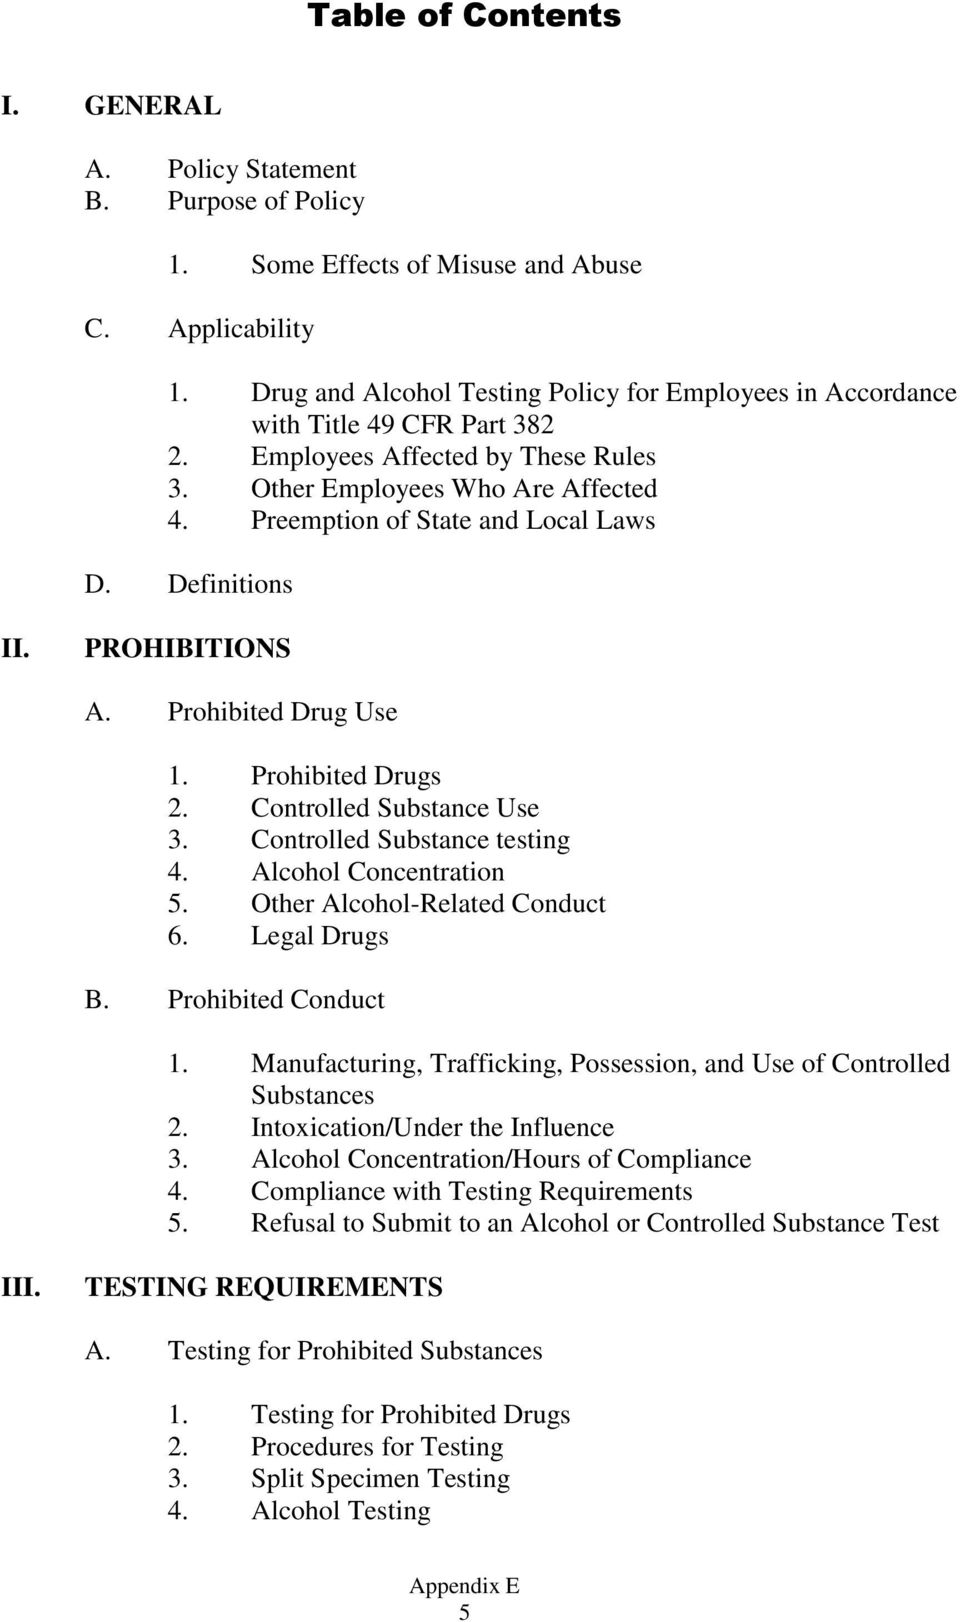 Definitions II. PROHIBITIONS A. Prohibited Drug Use 1. Prohibited Drugs 2. Controlled Substance Use 3. Controlled Substance testing 4. Alcohol Concentration 5. Other Alcohol-Related Conduct 6.